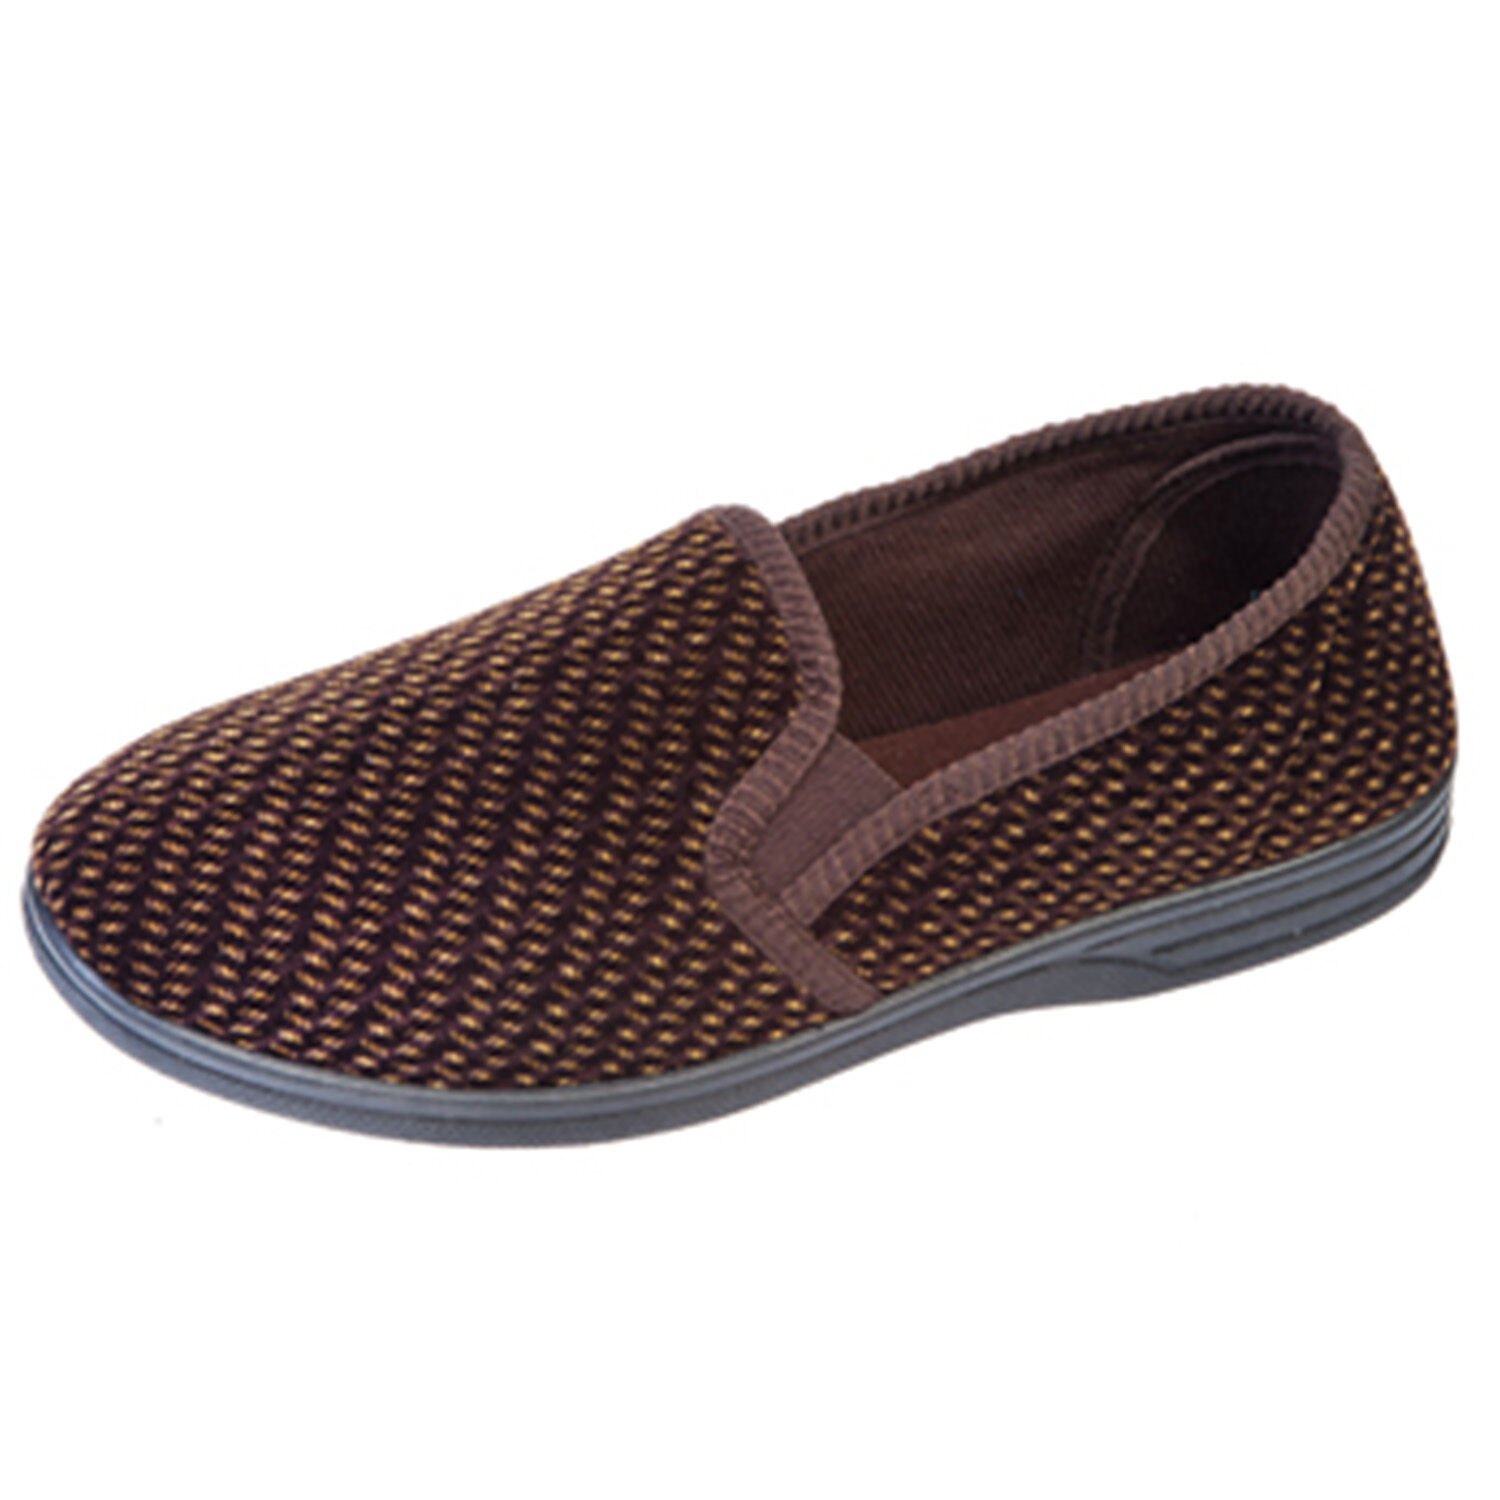 Coolers Hardwearing Mens Slippers Fabric Upper Hardwearing Coolers All Sizes Available 239efd